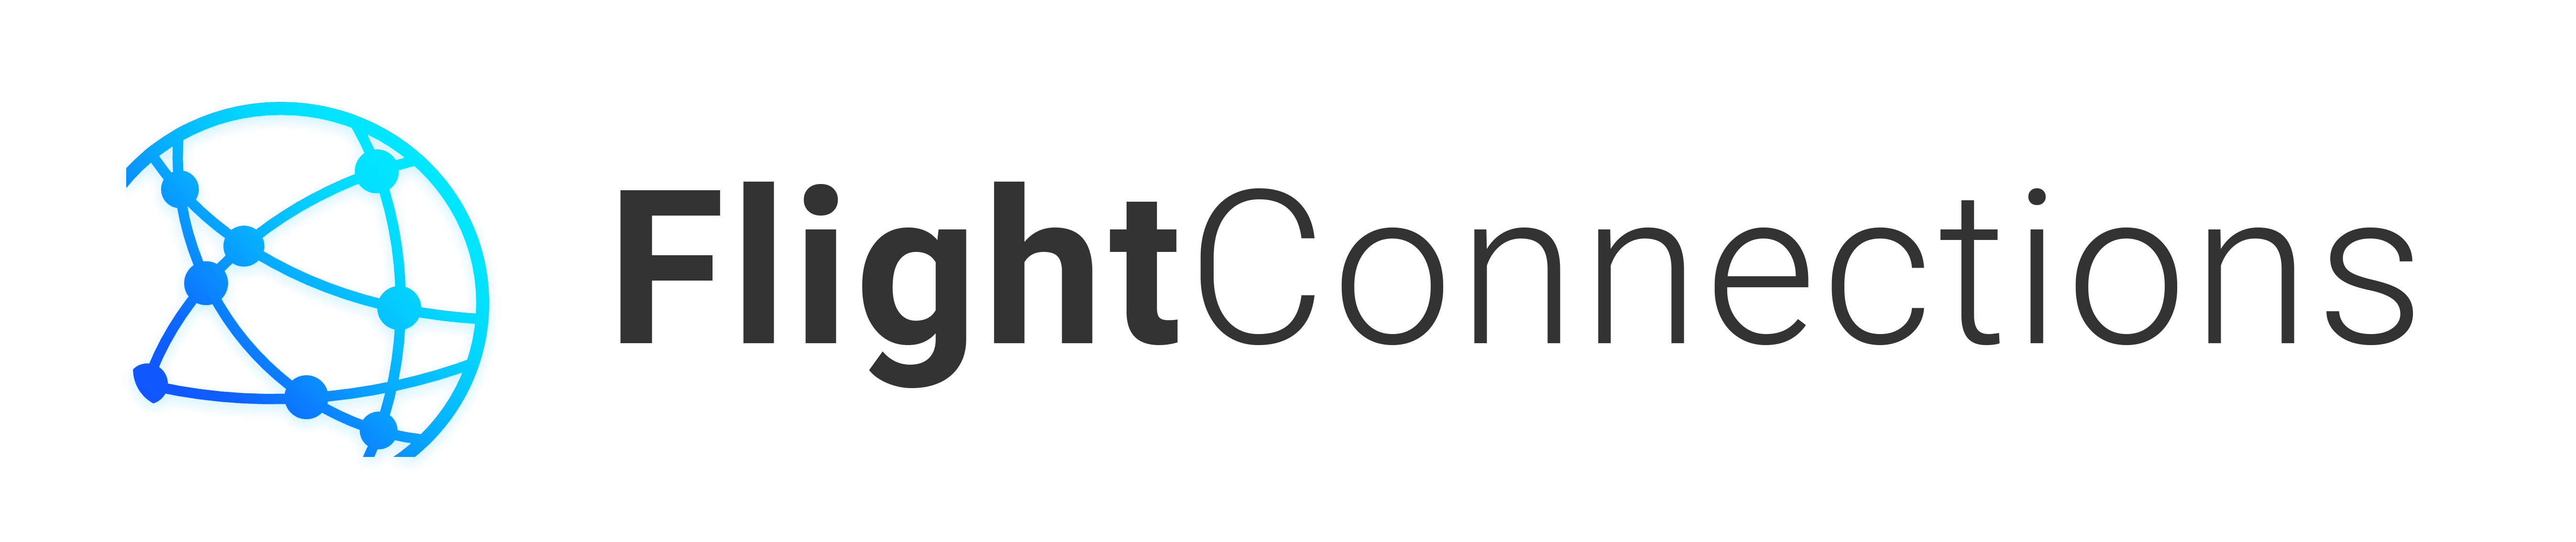 FlightConnections logo